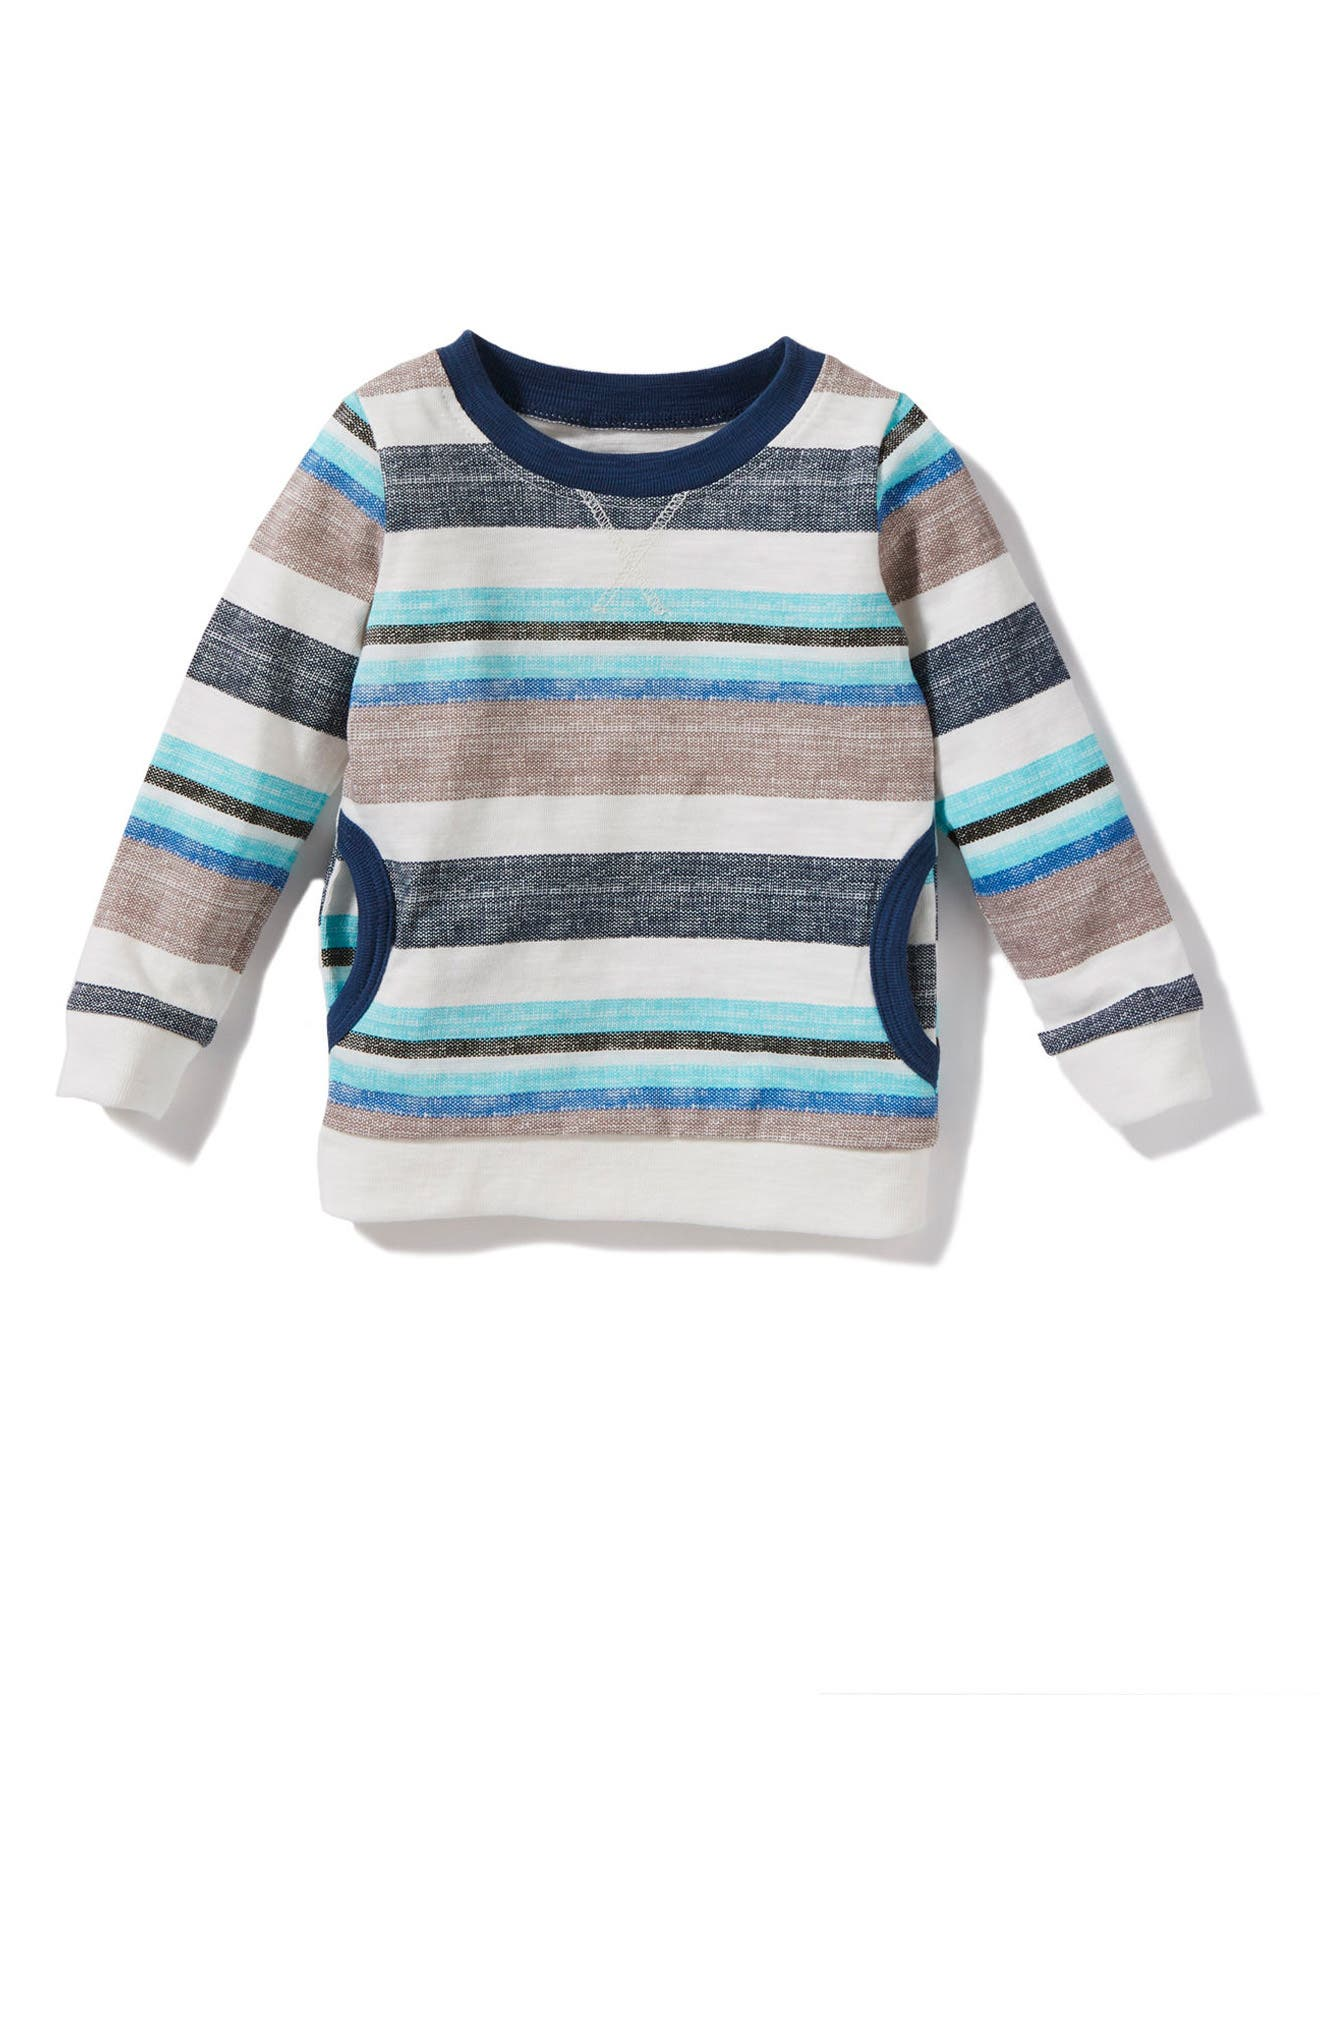 Alternate Image 1 Selected - Peek Declan Stripe Shirt (Baby Boys)